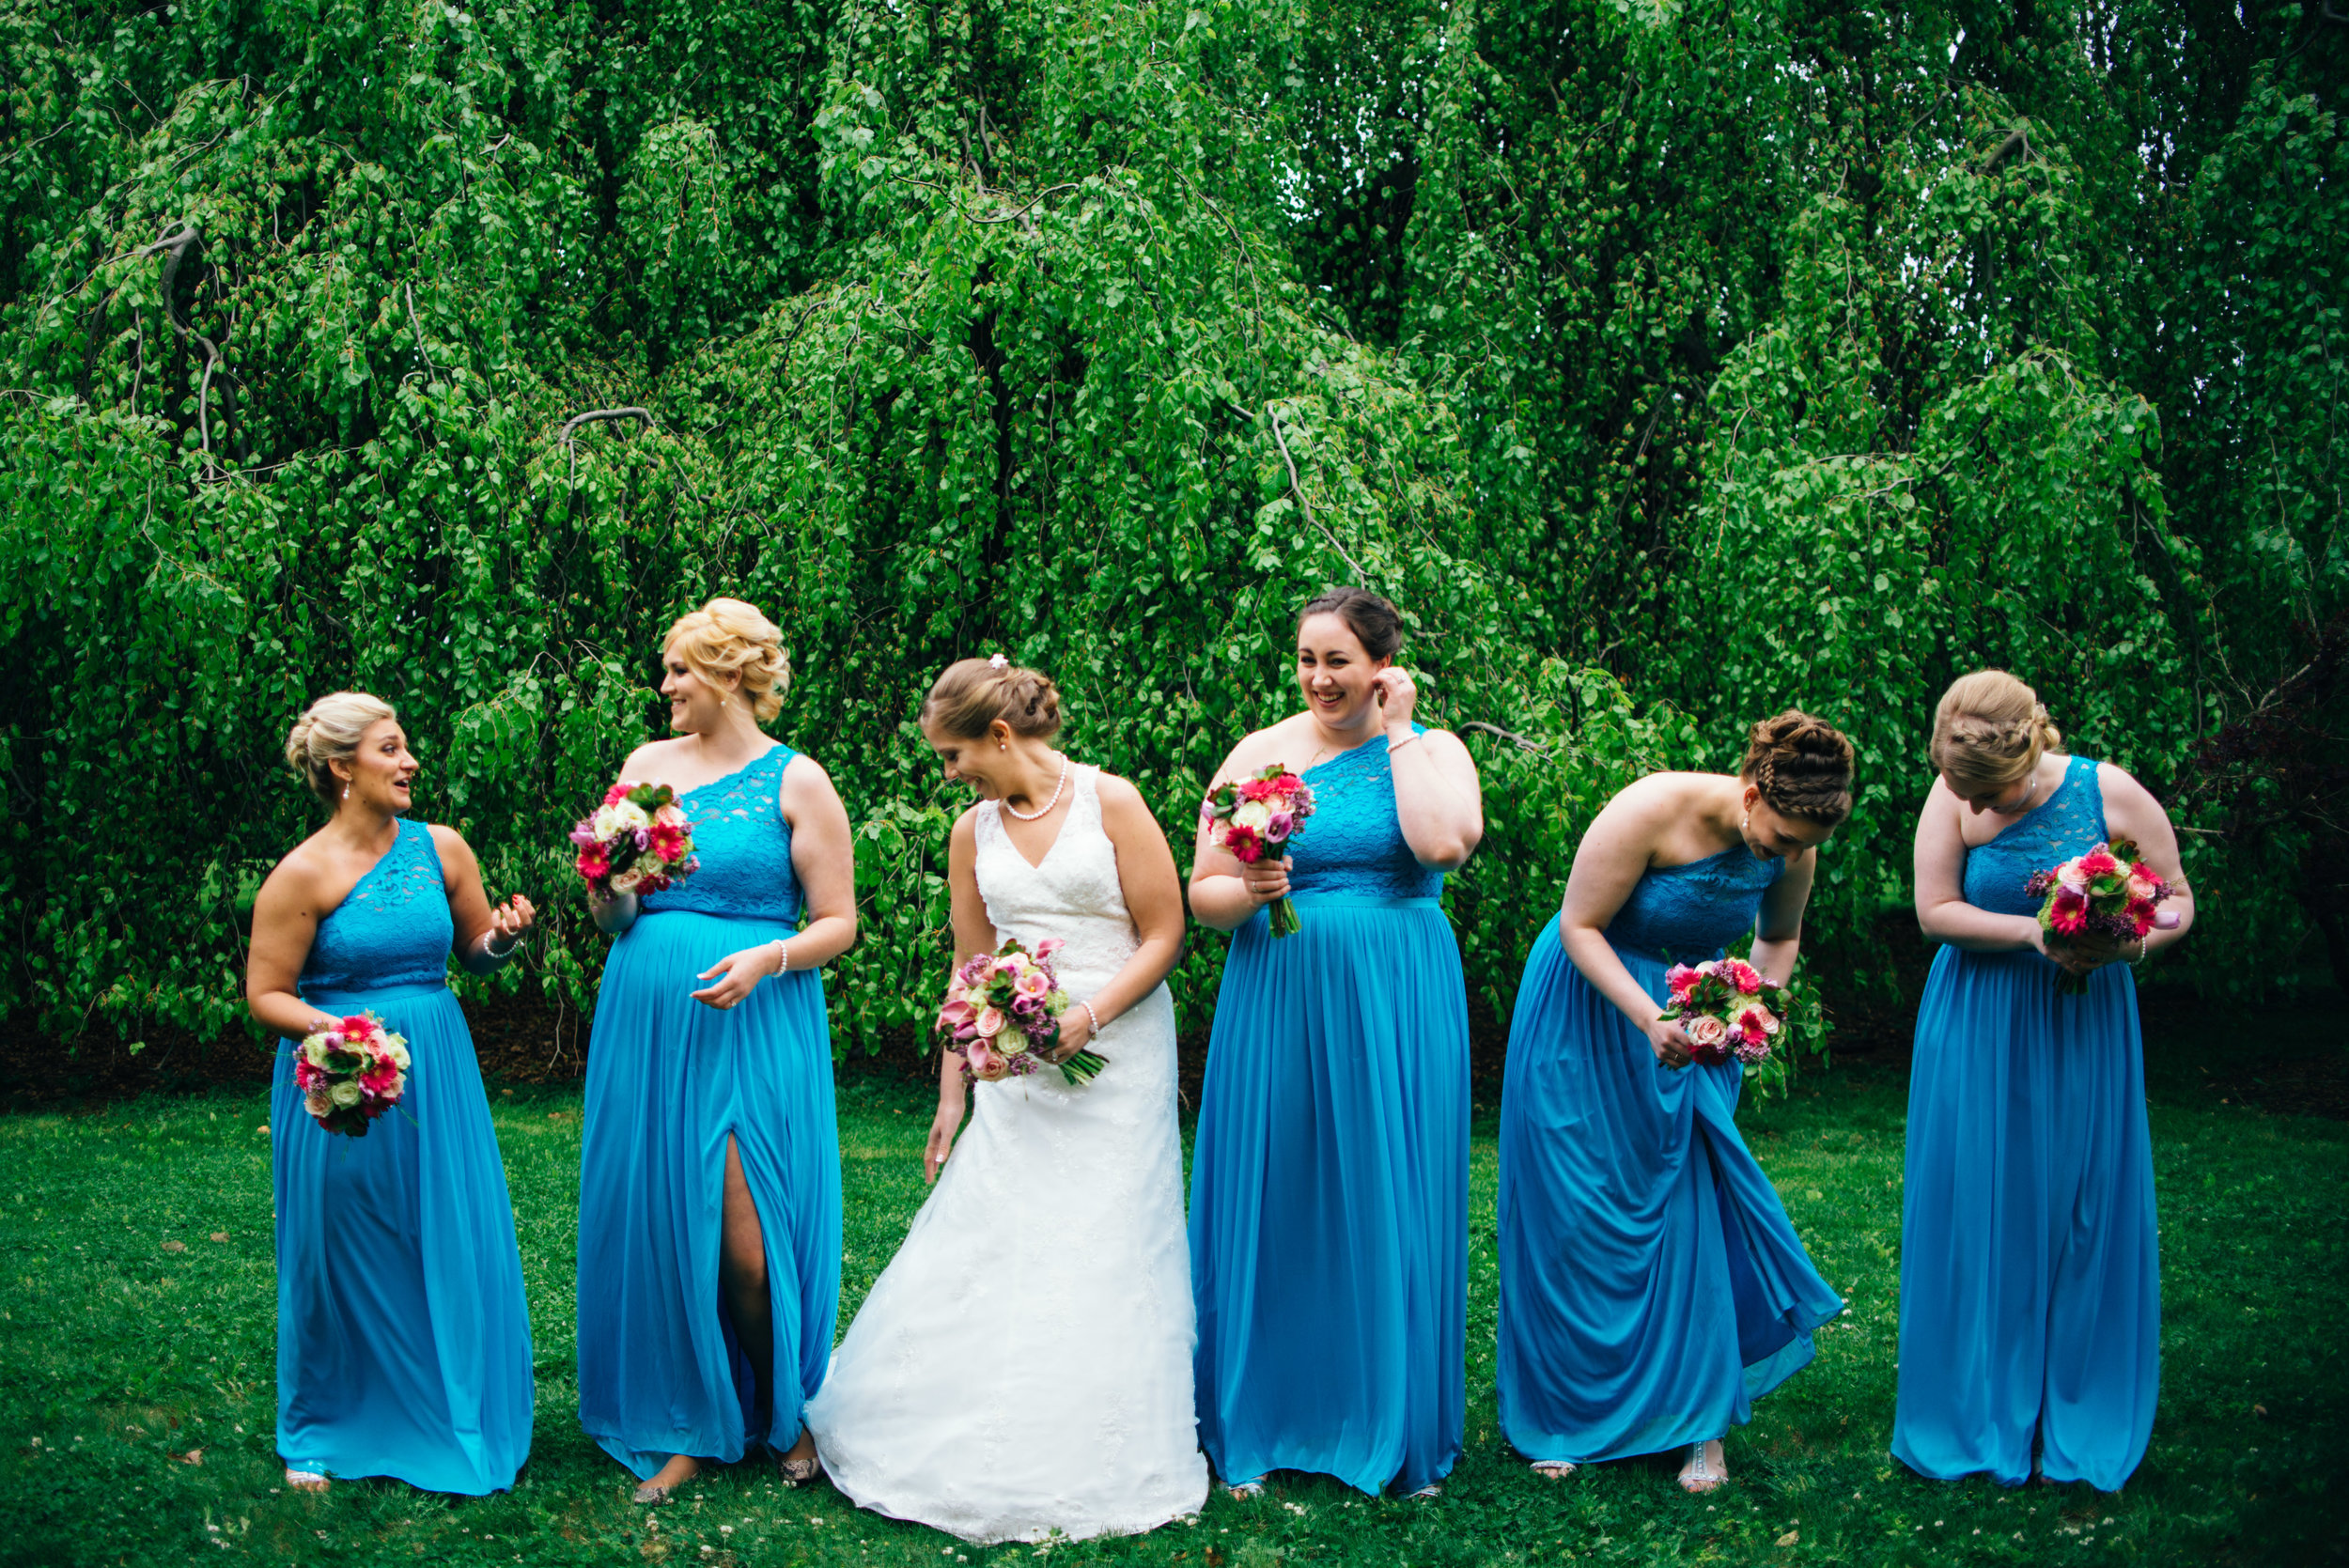 candid wedding photo of bridesmaids wearing blue one-shoulder dresses with pink bouquets